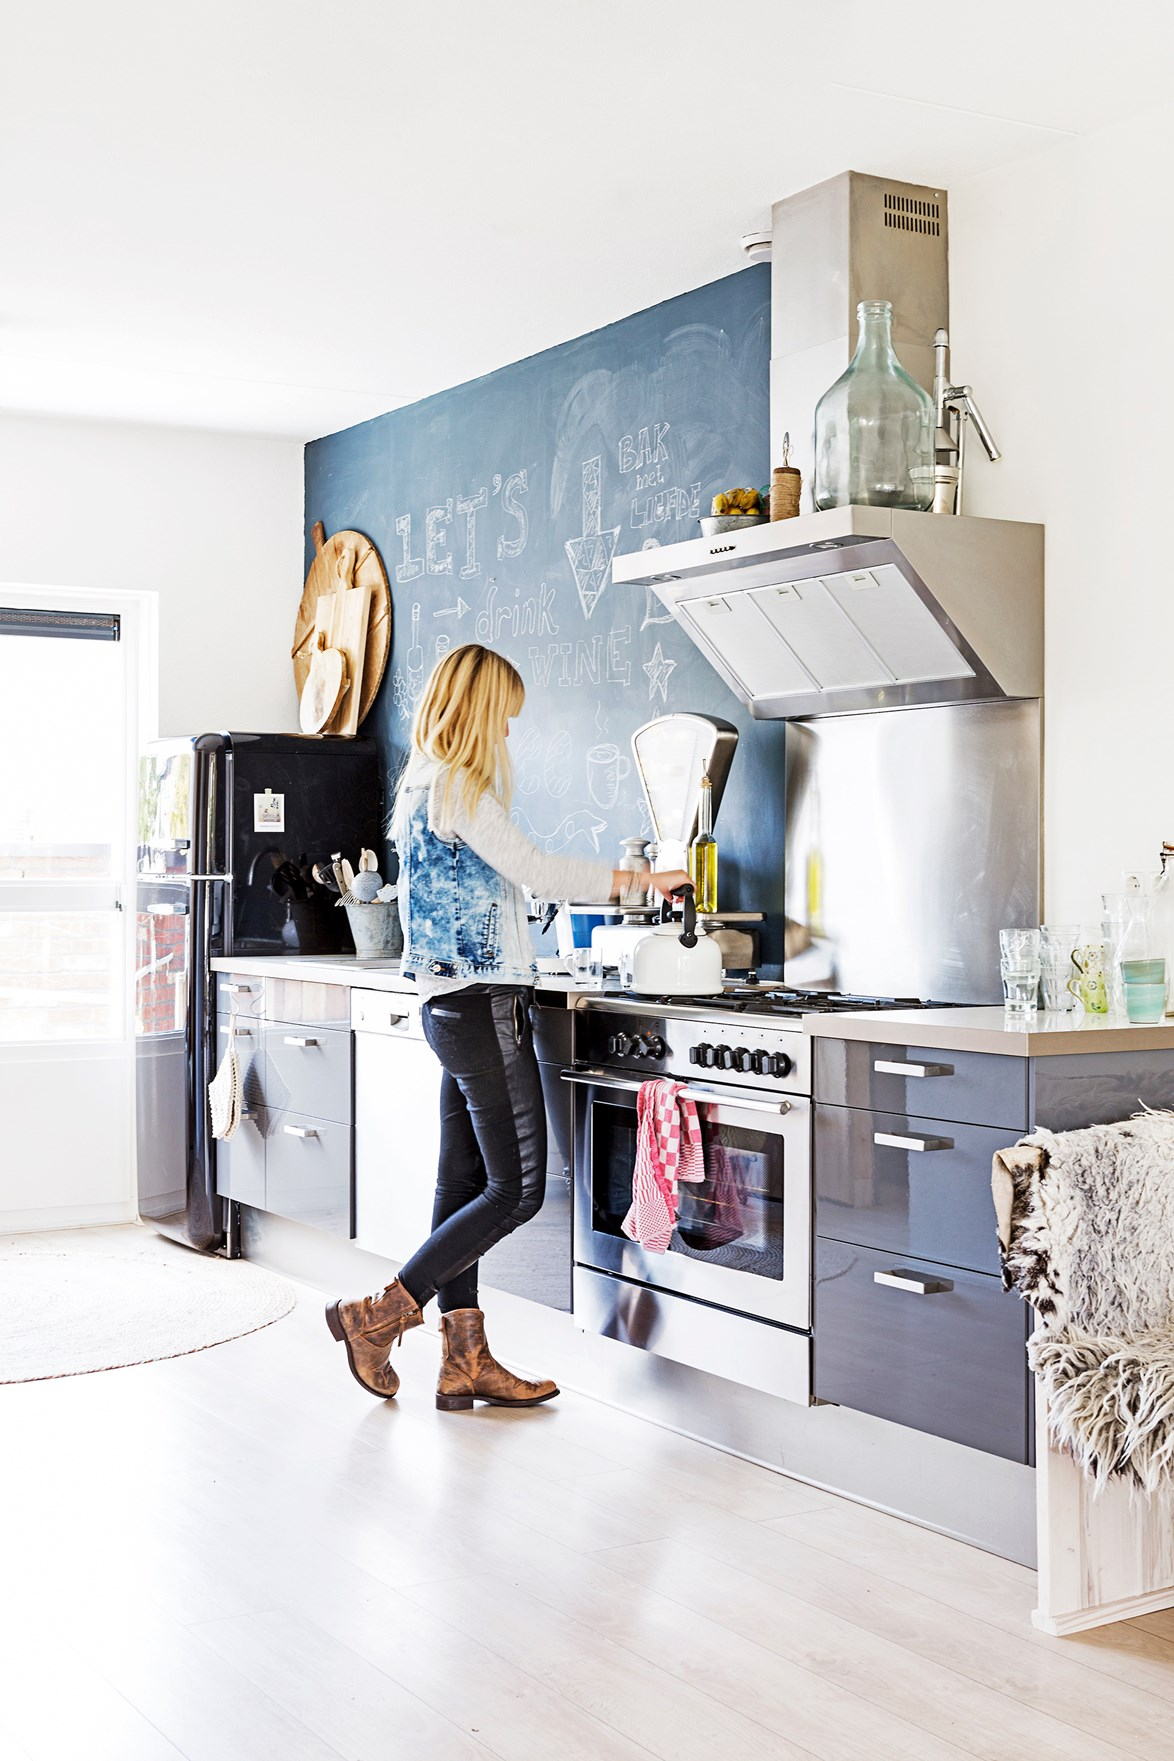 """**2012 – INDUSTRIAL COOL** <br><br> Painting a feature wall in [chalkboard paint](https://www.homestolove.com.au/how-to-apply-chalkboard-paint-7763